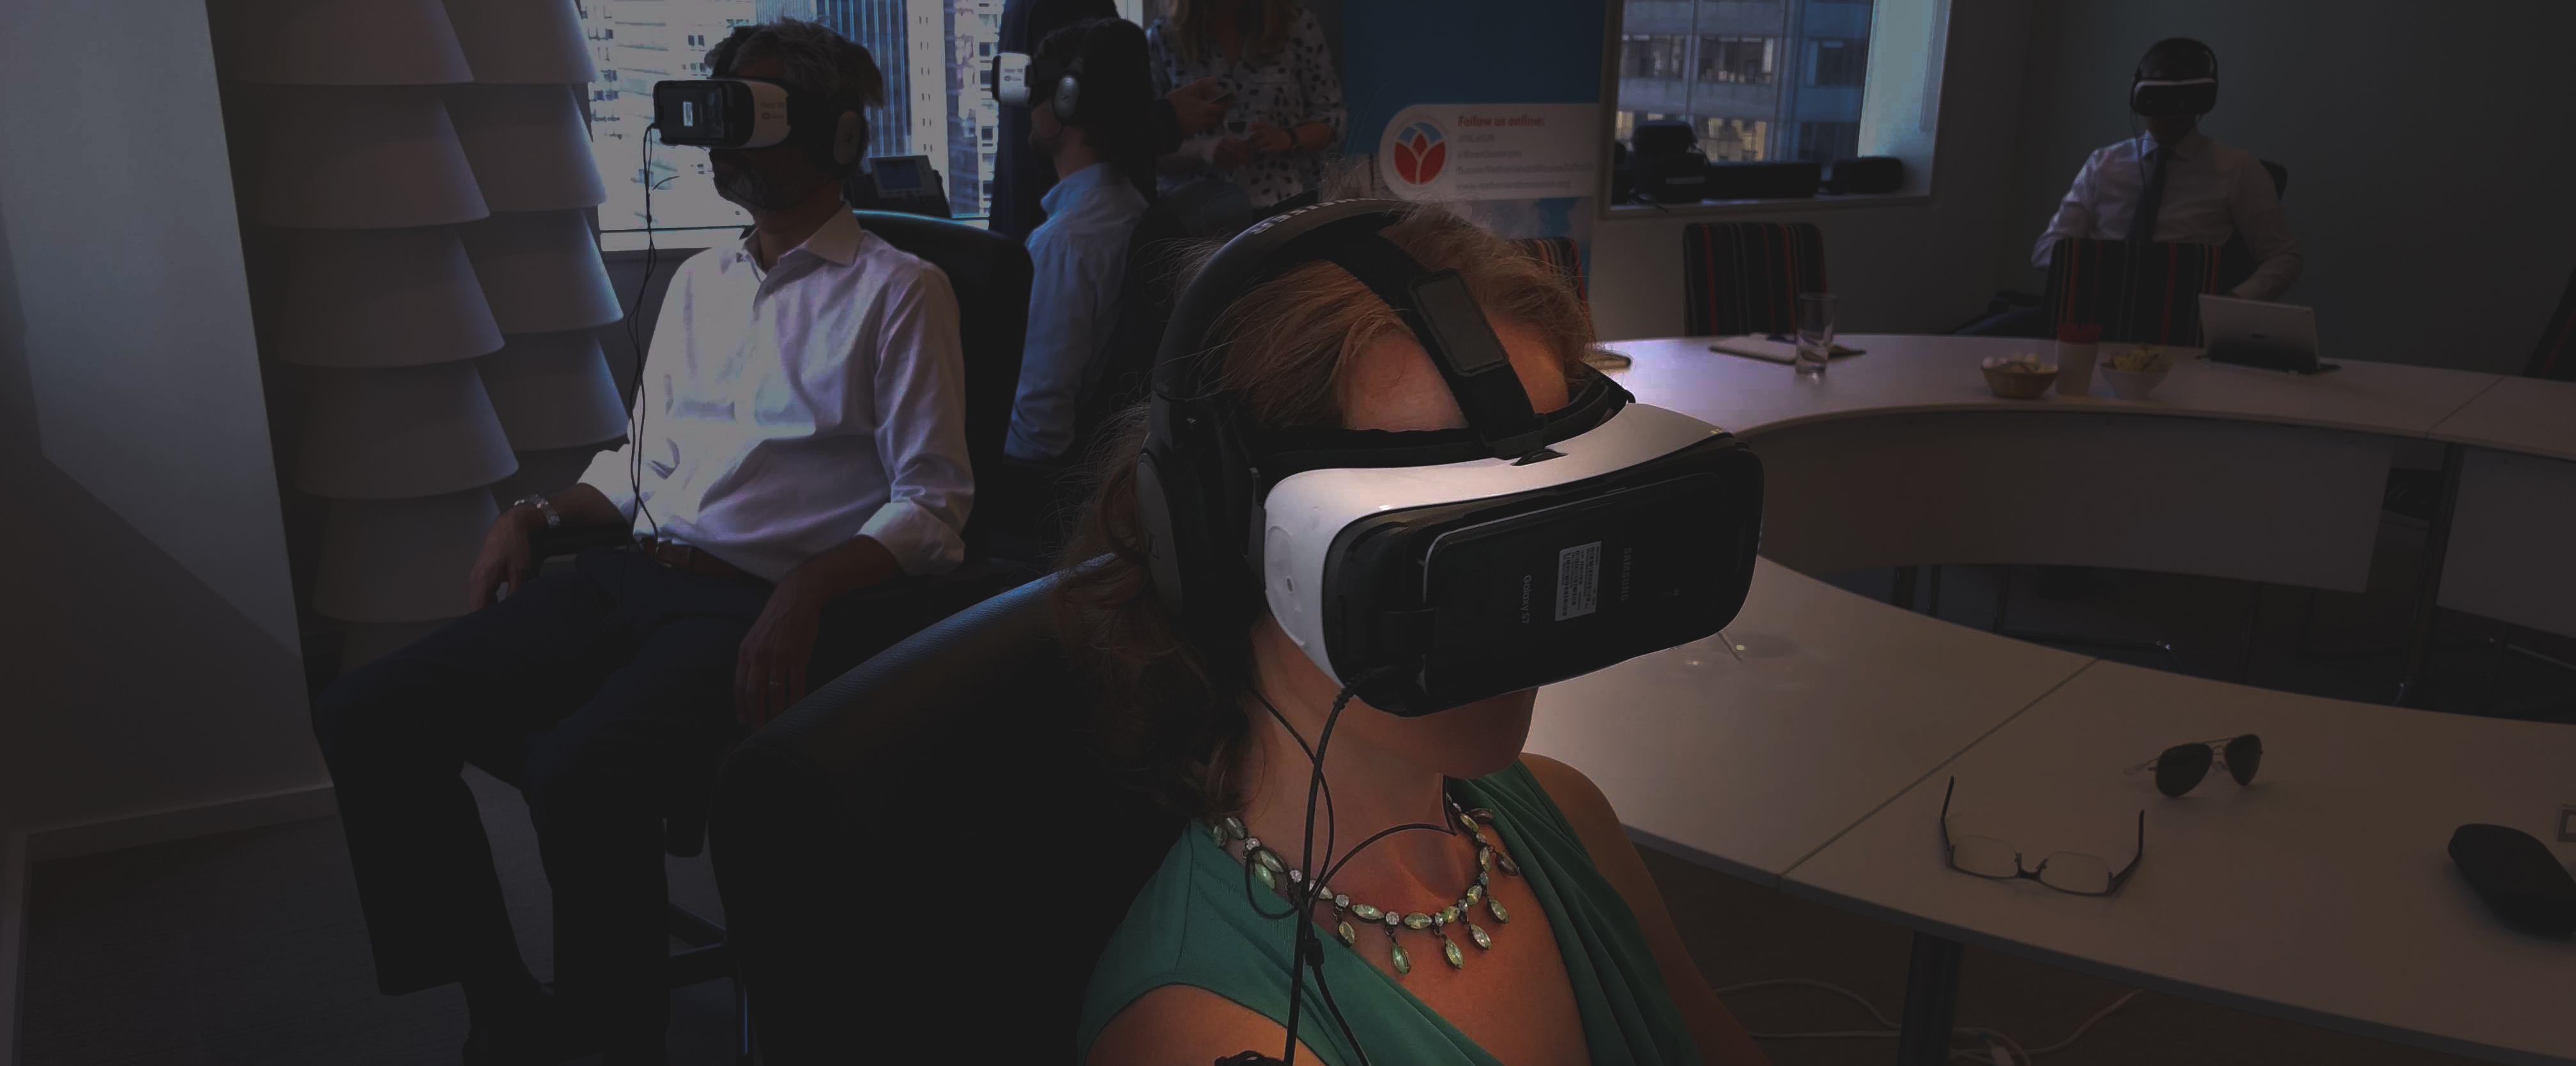 People watch a VR film using a headset